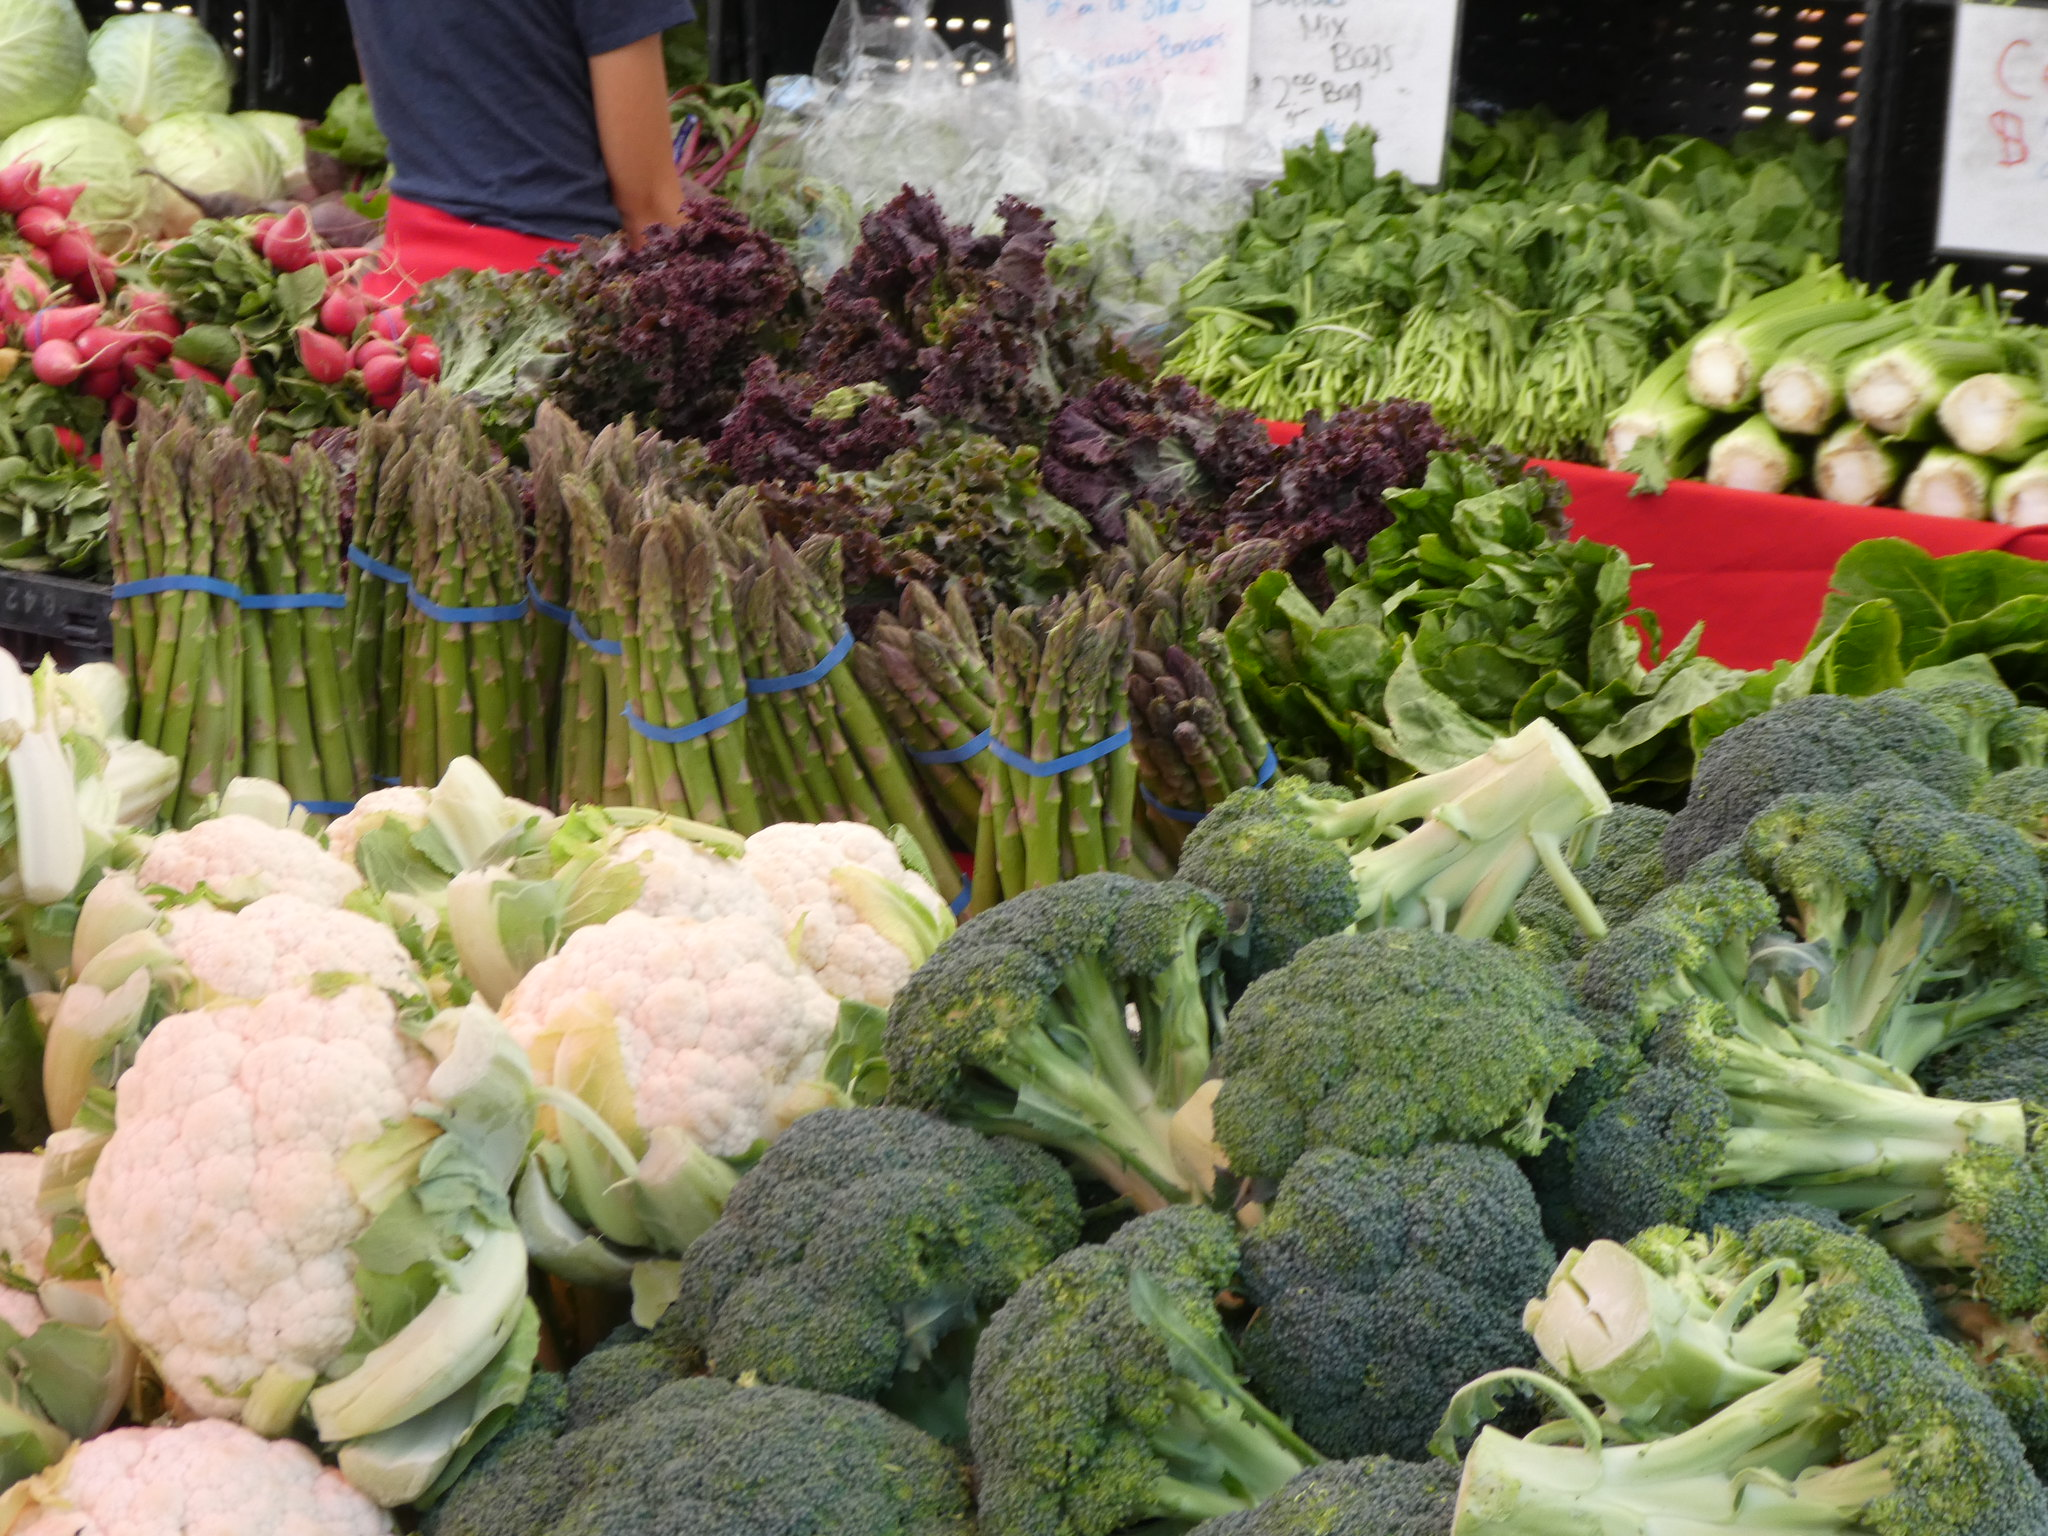 2018-06-09 - Walking around the Brentwood Farmers Market